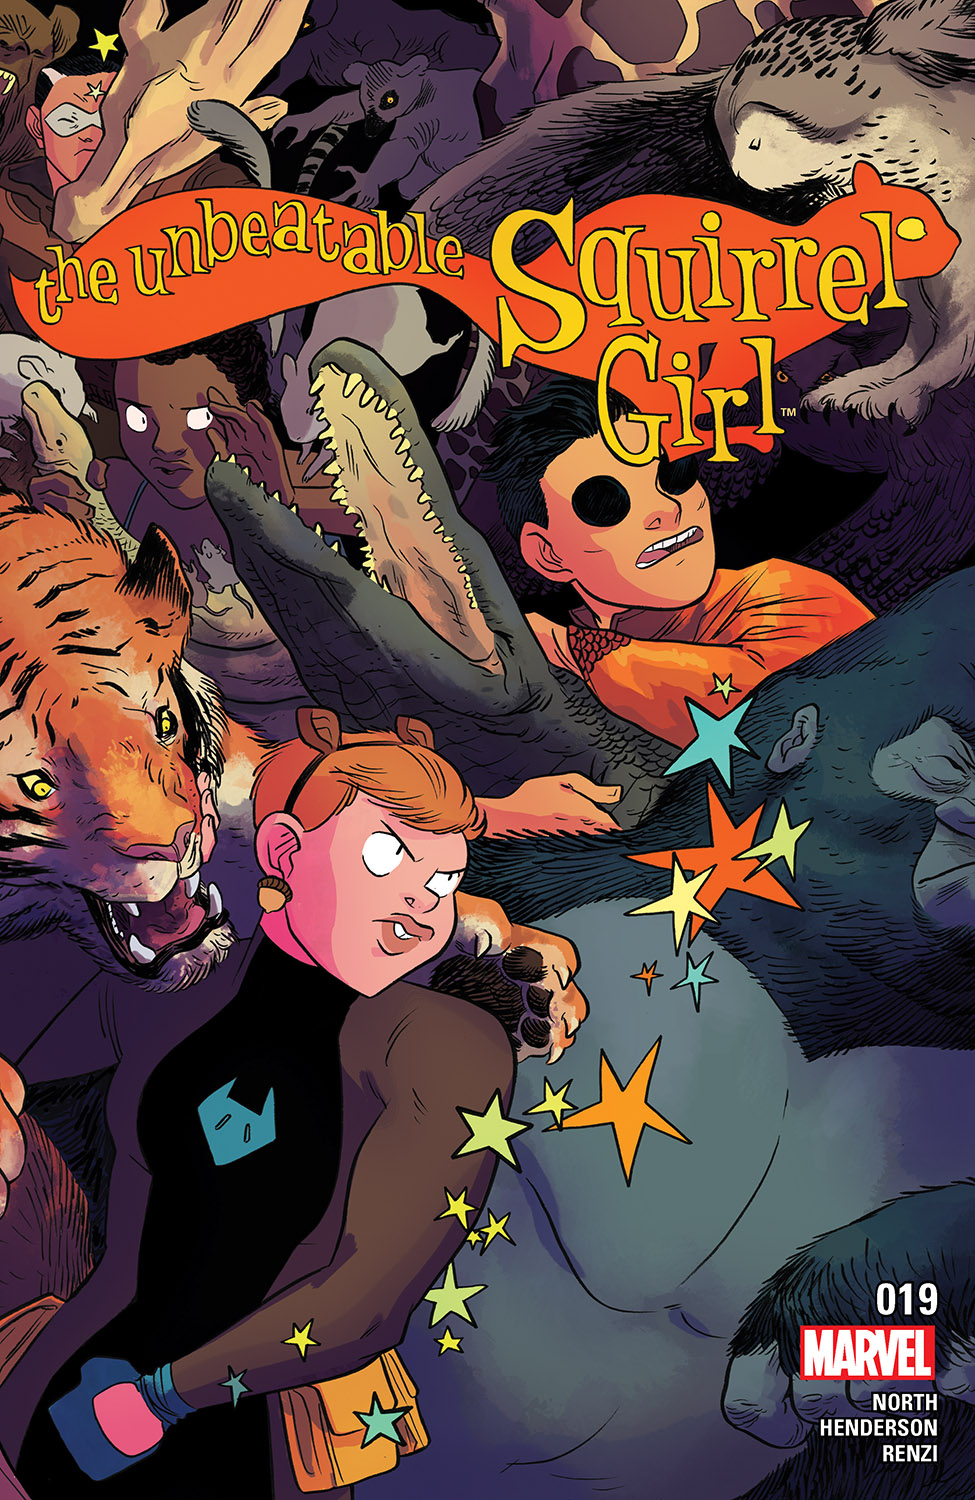 The Unbeatable Squirrel Girl (2015) #19